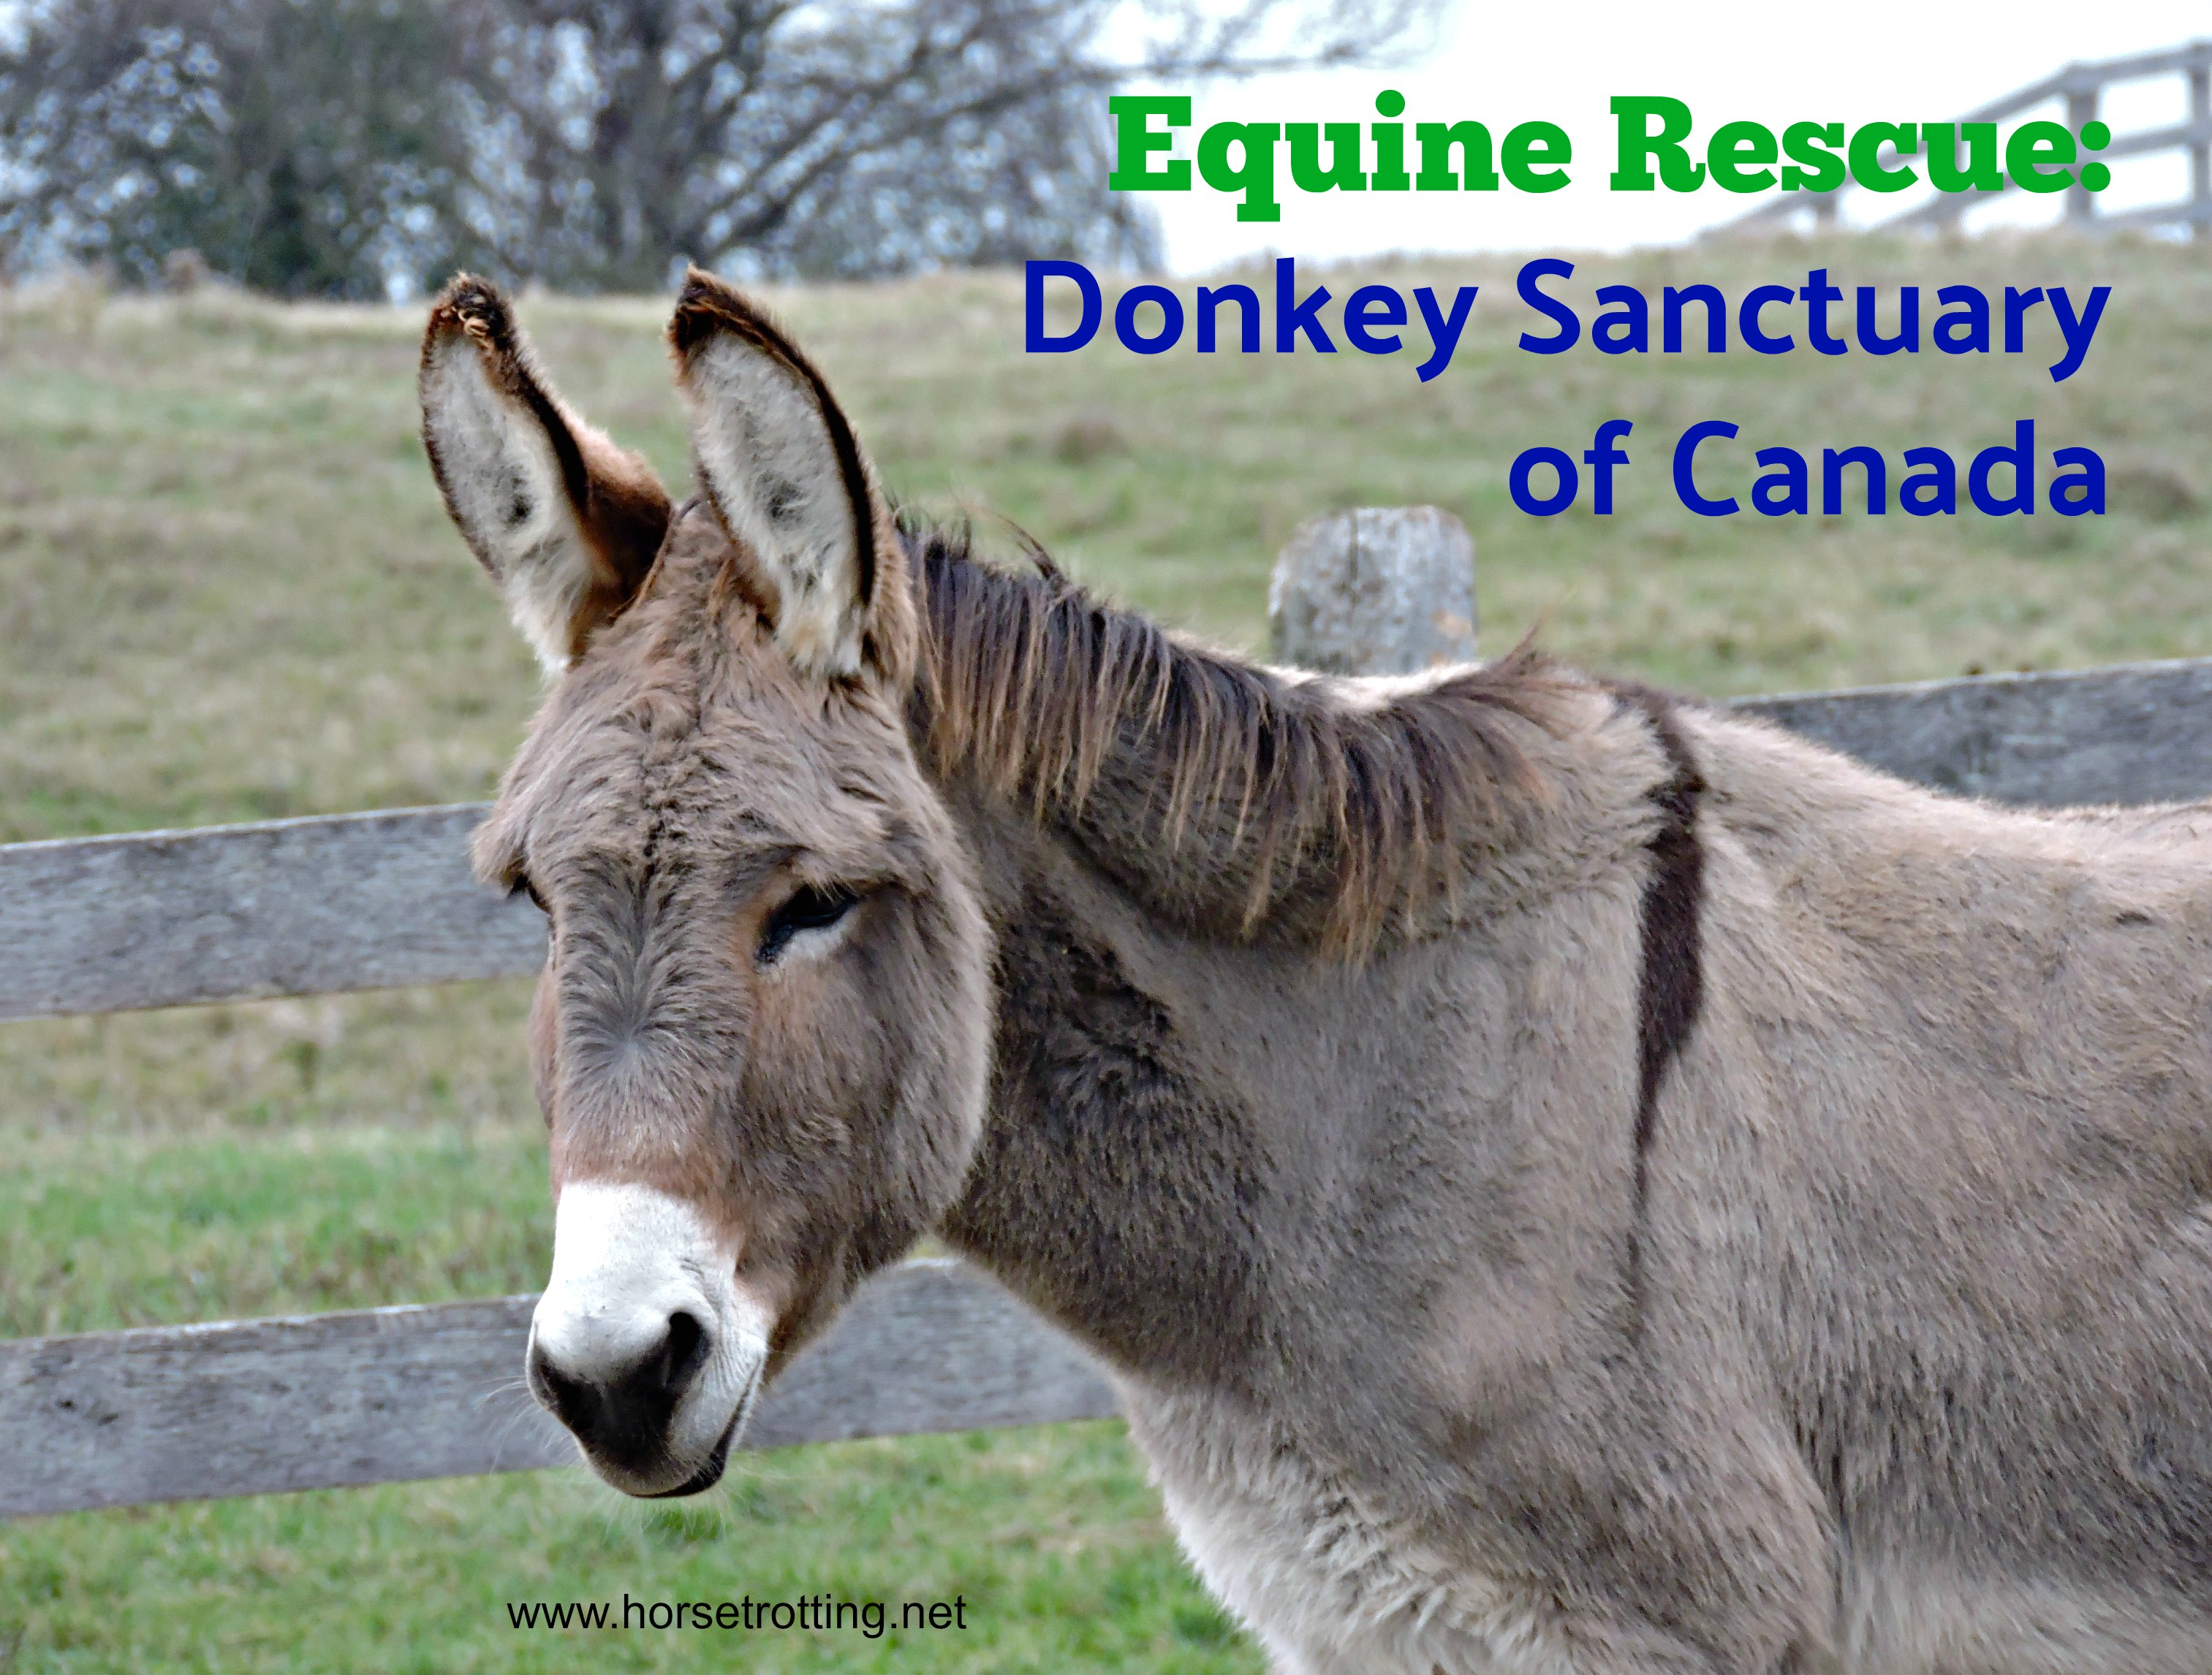 A Year of Heros #5: Donkey Sanctuary of Canada